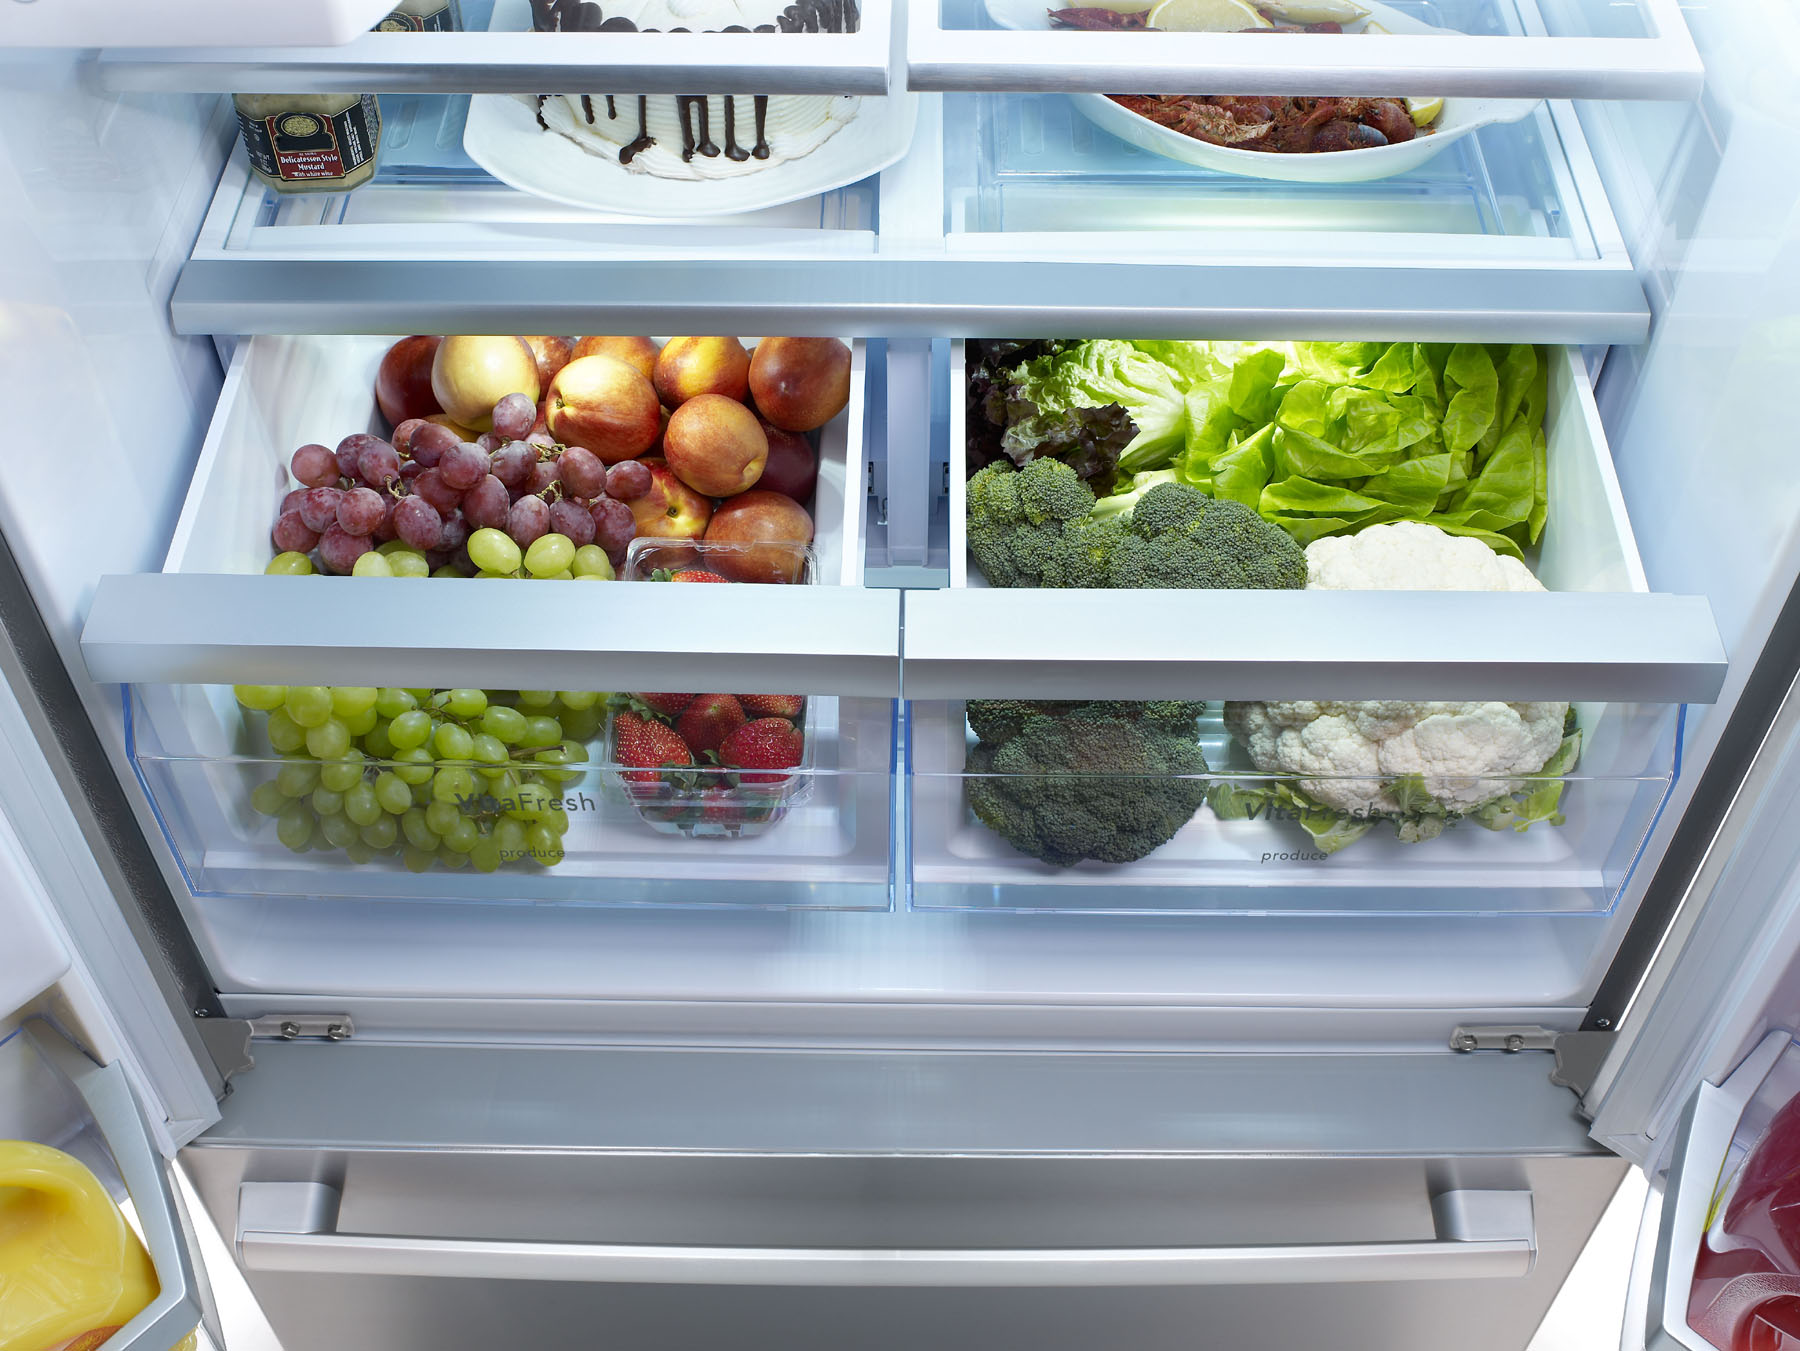 How to store food in the refrigerator - gadgets f.